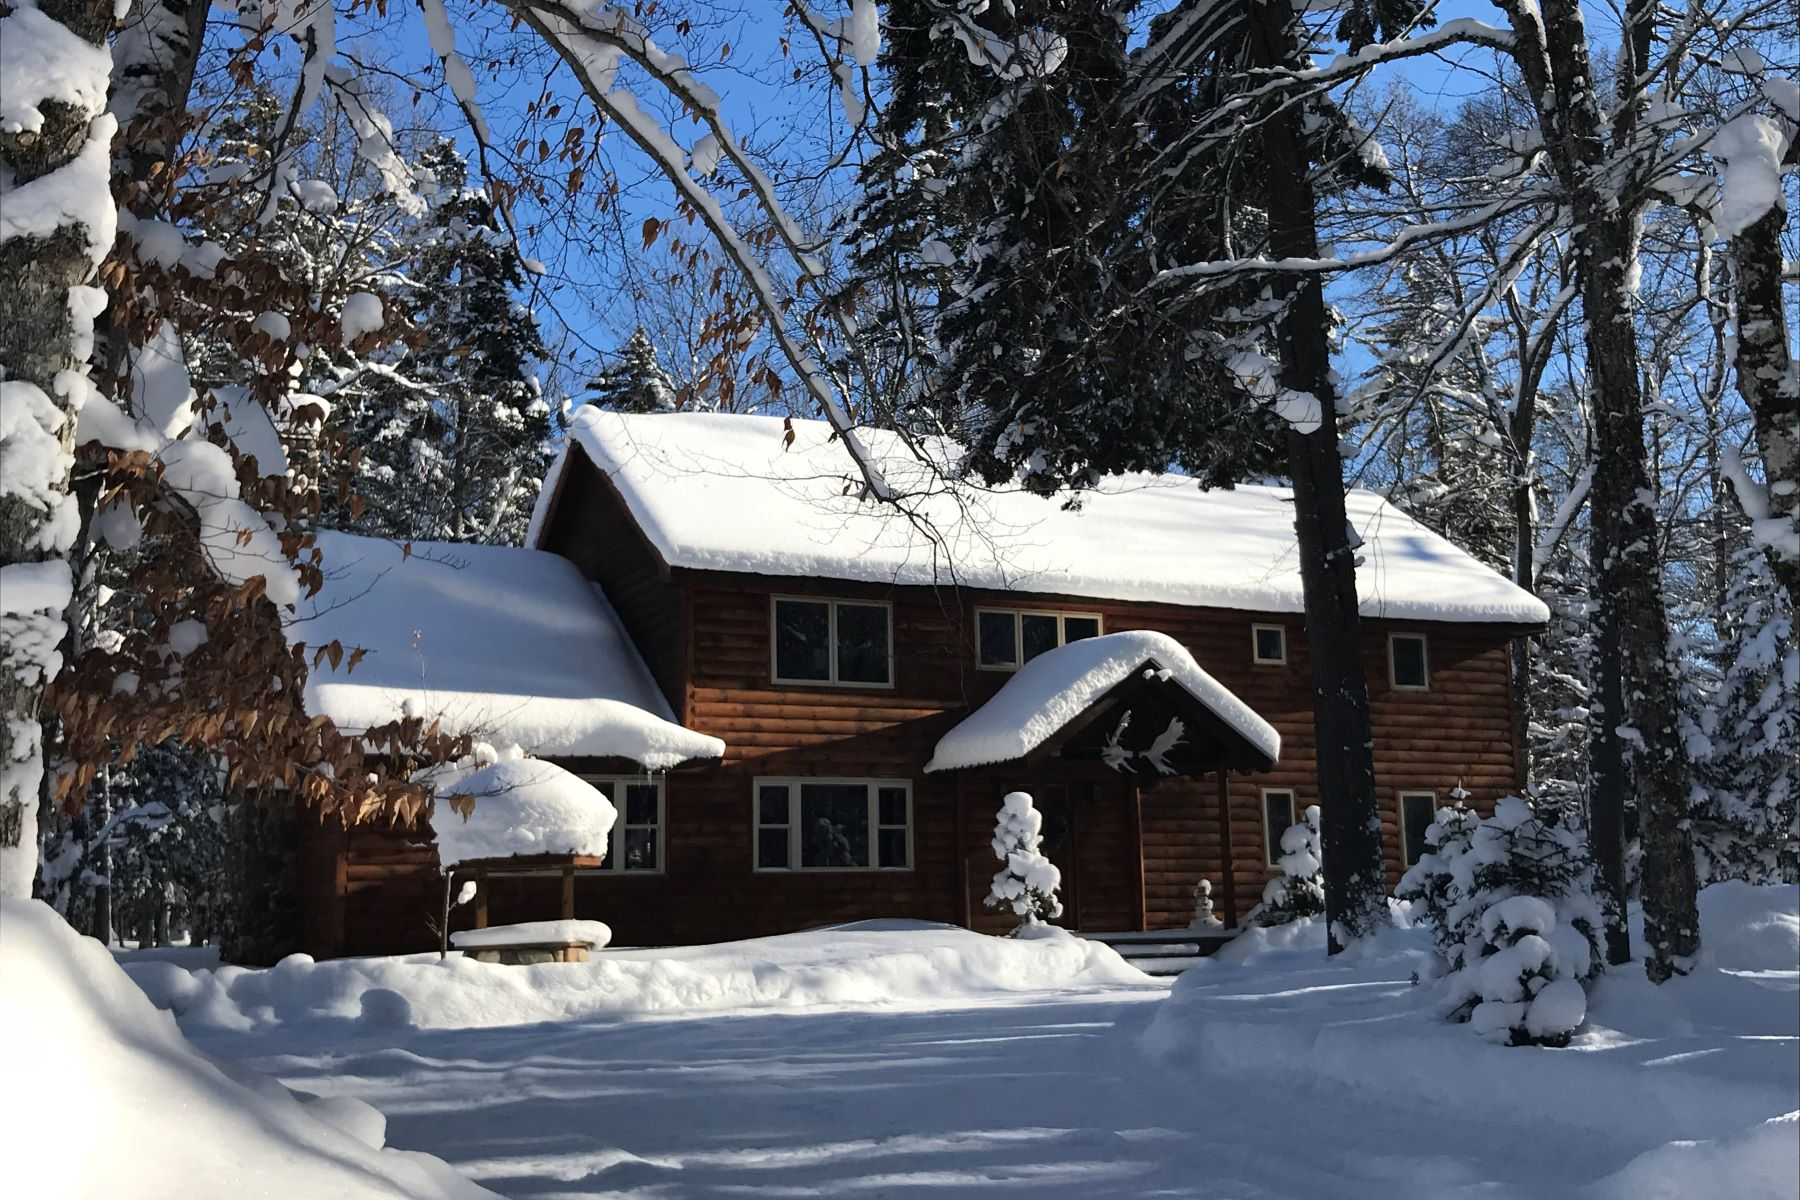 Casa Unifamiliar por un Venta en Private Log Home Near Big Moose Lake 171 Darts Lake Road Big Moose, Nueva York 13331 Estados Unidos